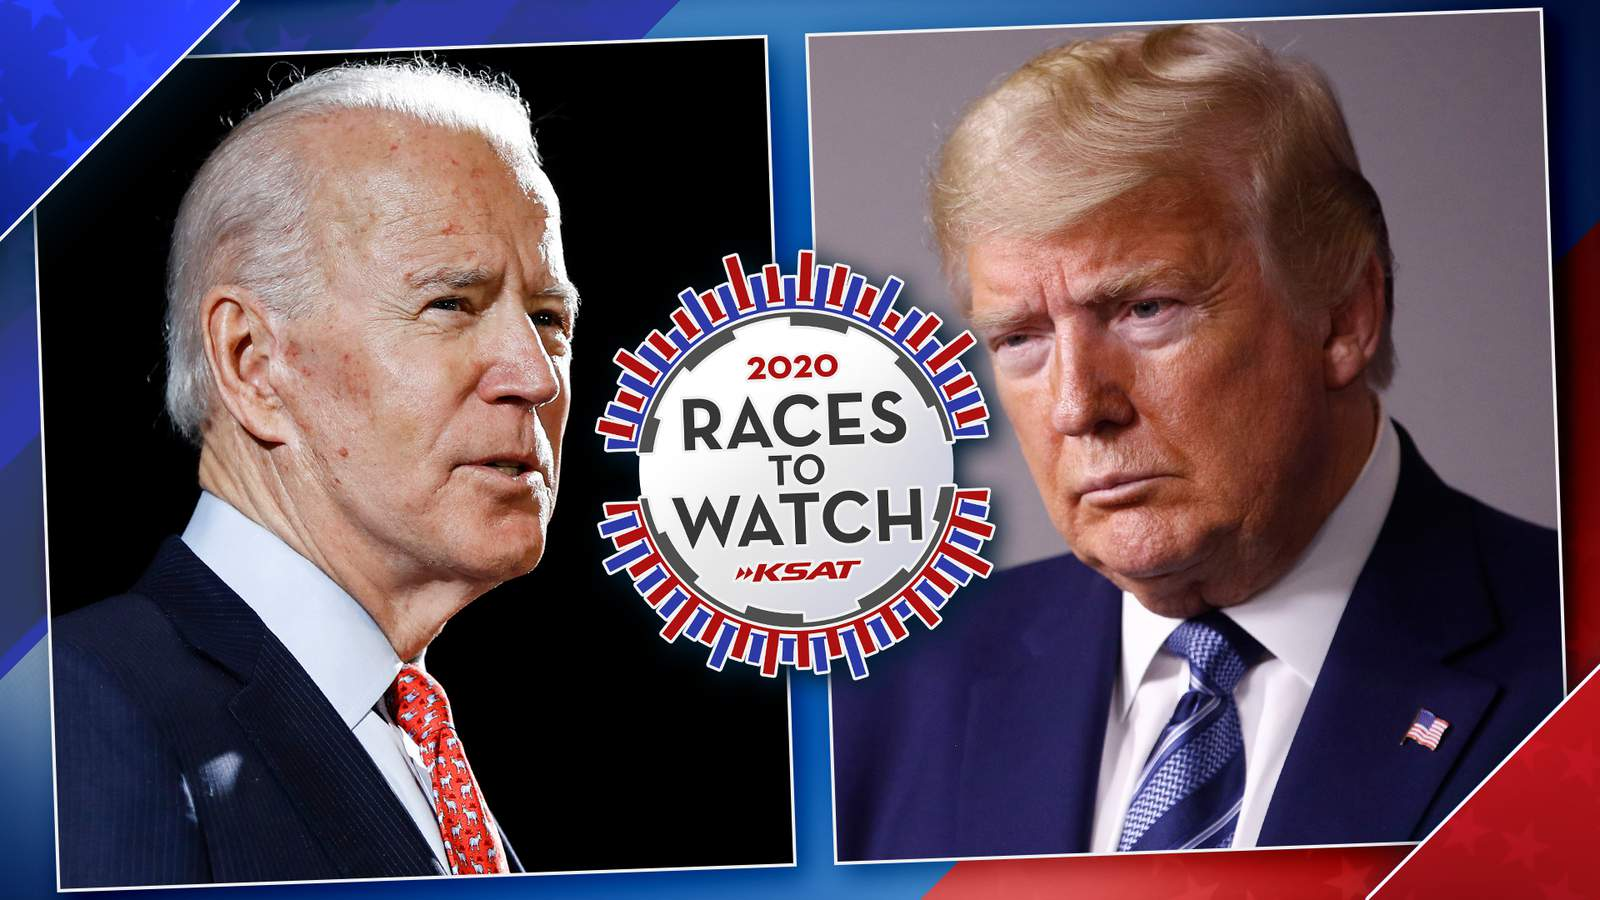 Bexar Facts poll: Joe Biden leads Donald Trump 52%-35% among likely Bexar County voters